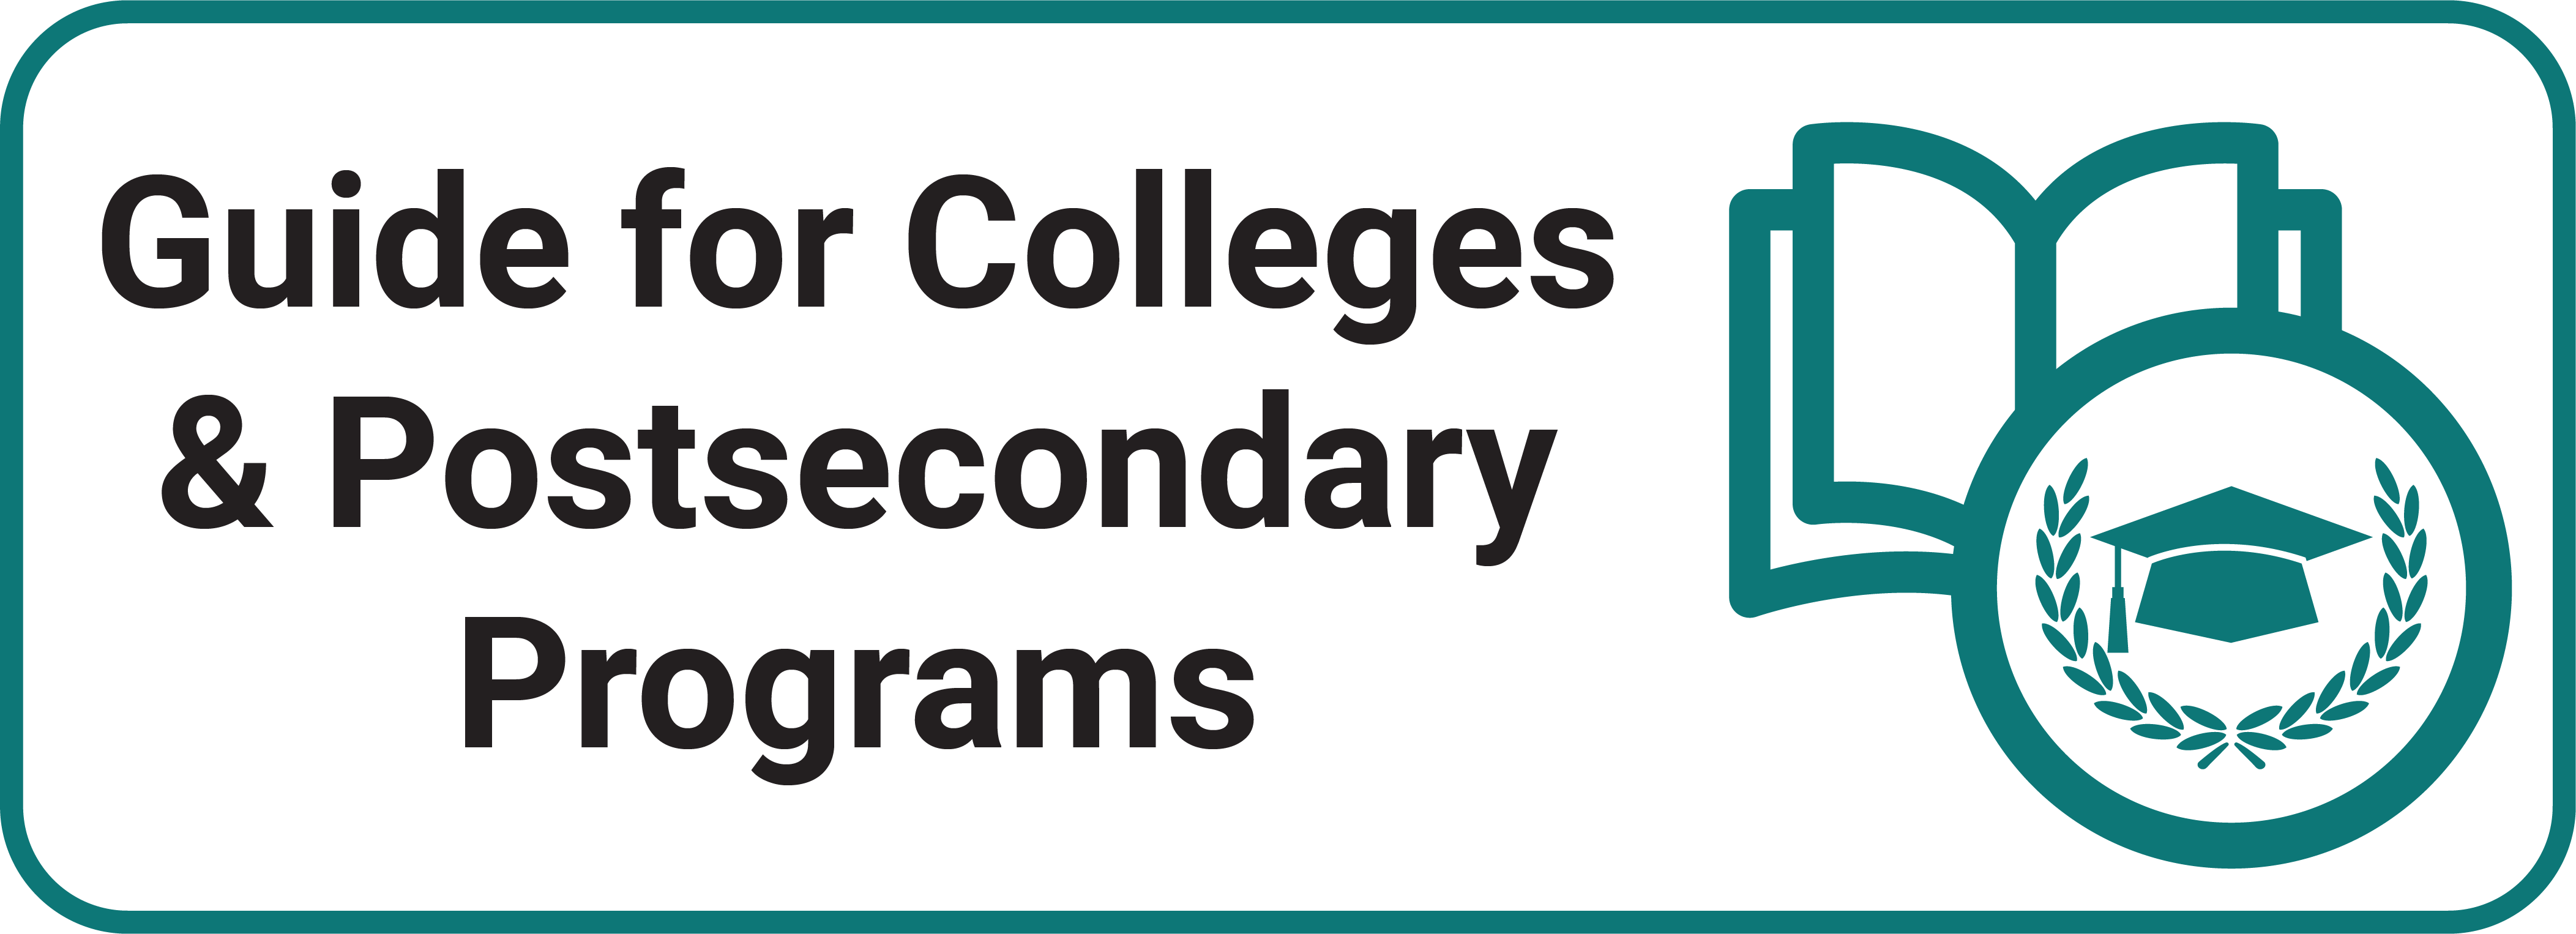 Guide for Colleges and Postsecondary Programs